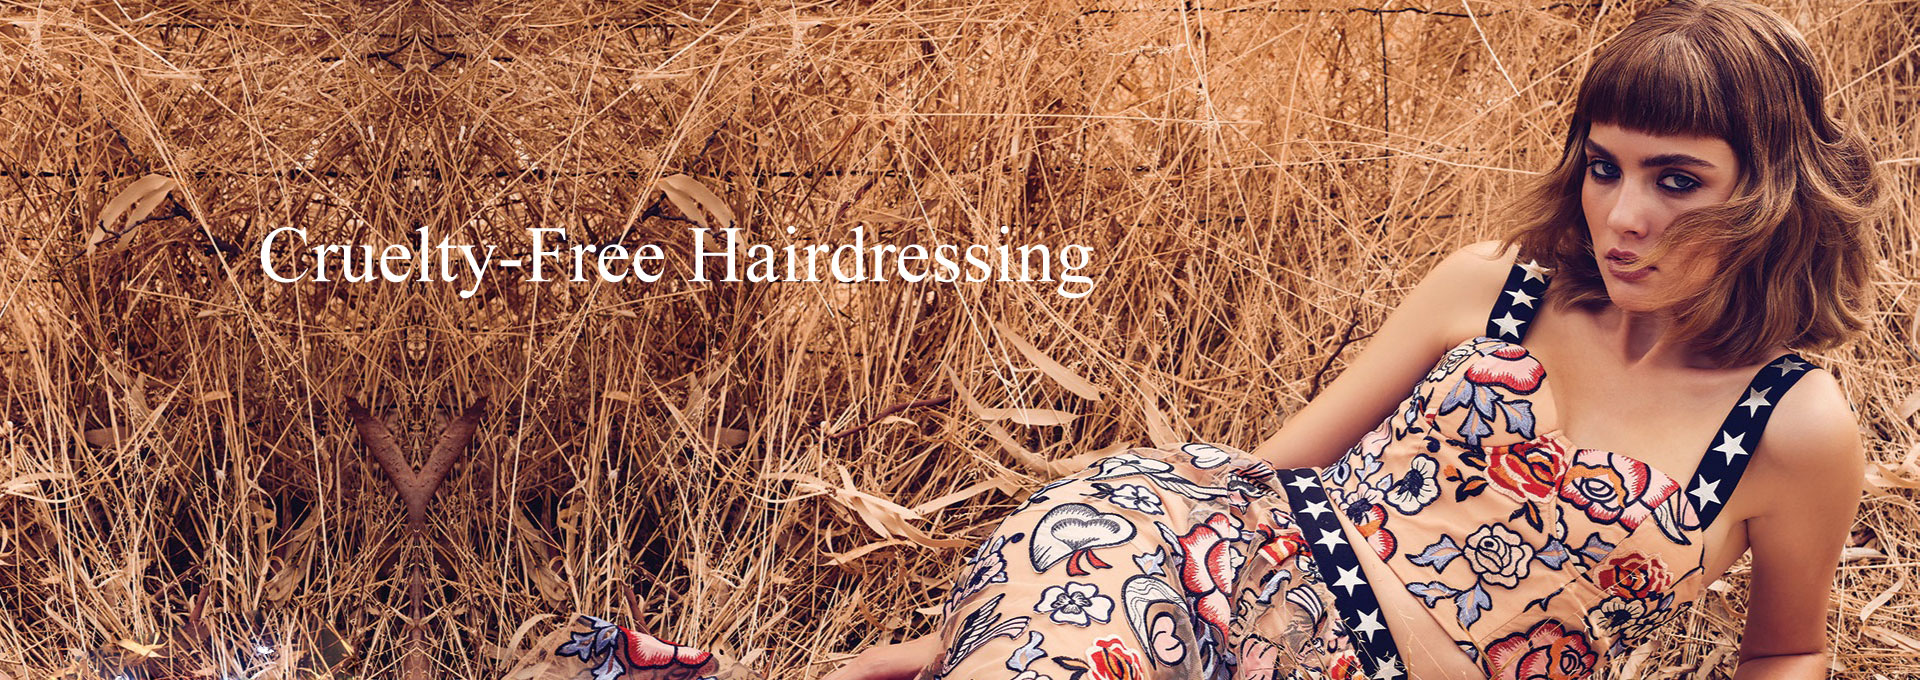 Cruelty Free Hairdressing